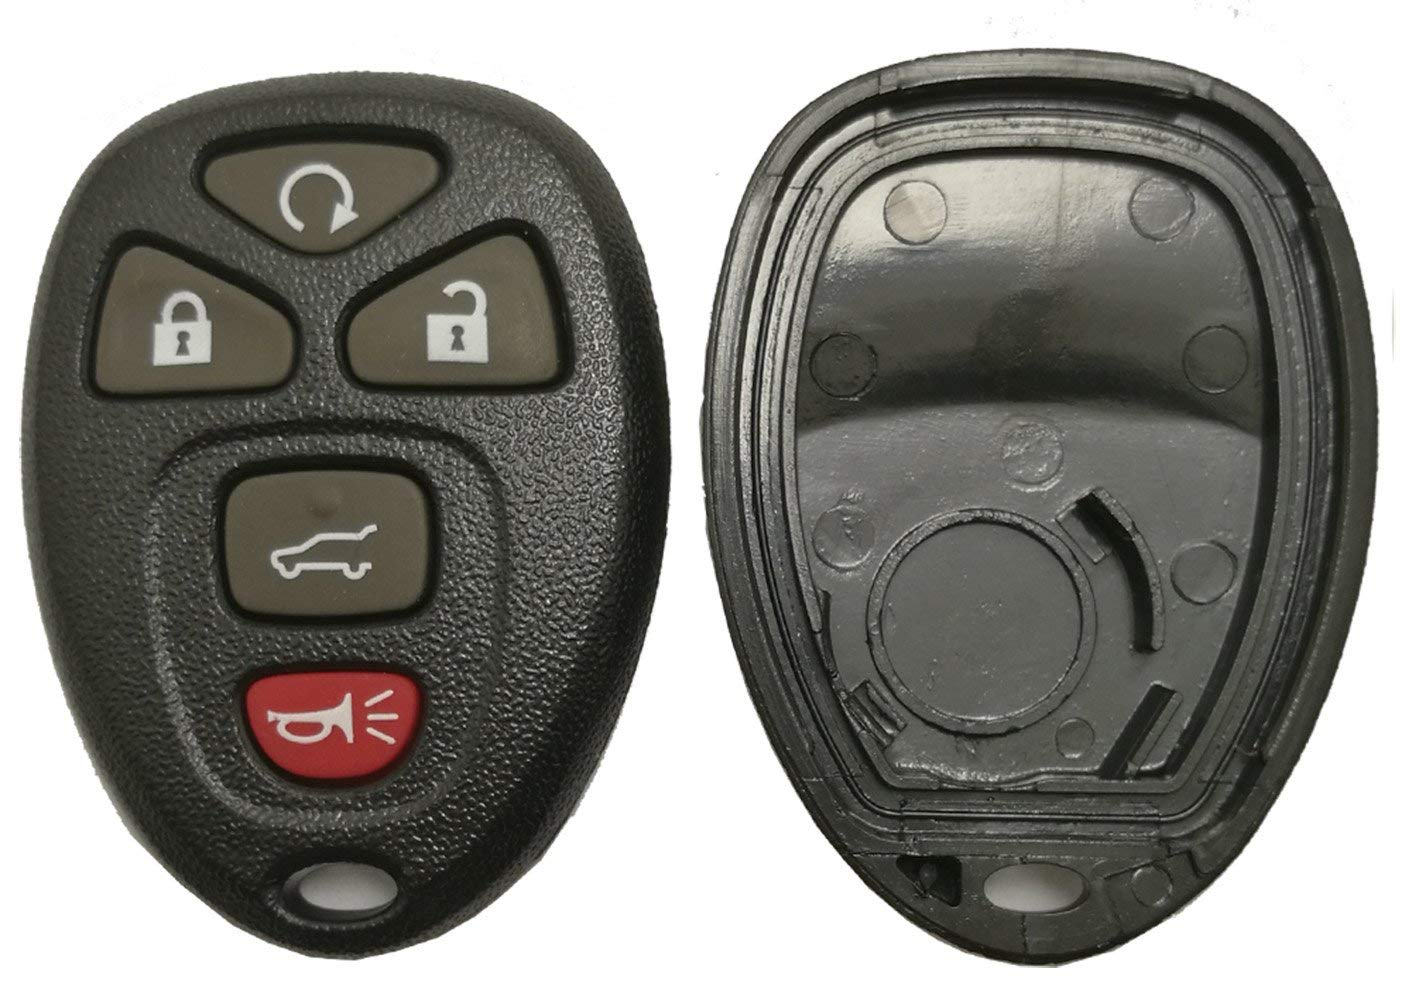 Replacement Key Fob Case Shell for GM GMC Yukon Buick Chevrolet Saturn 5 Buttons Keyless Entry Remote Car Key Casing with Button Pad (Black)